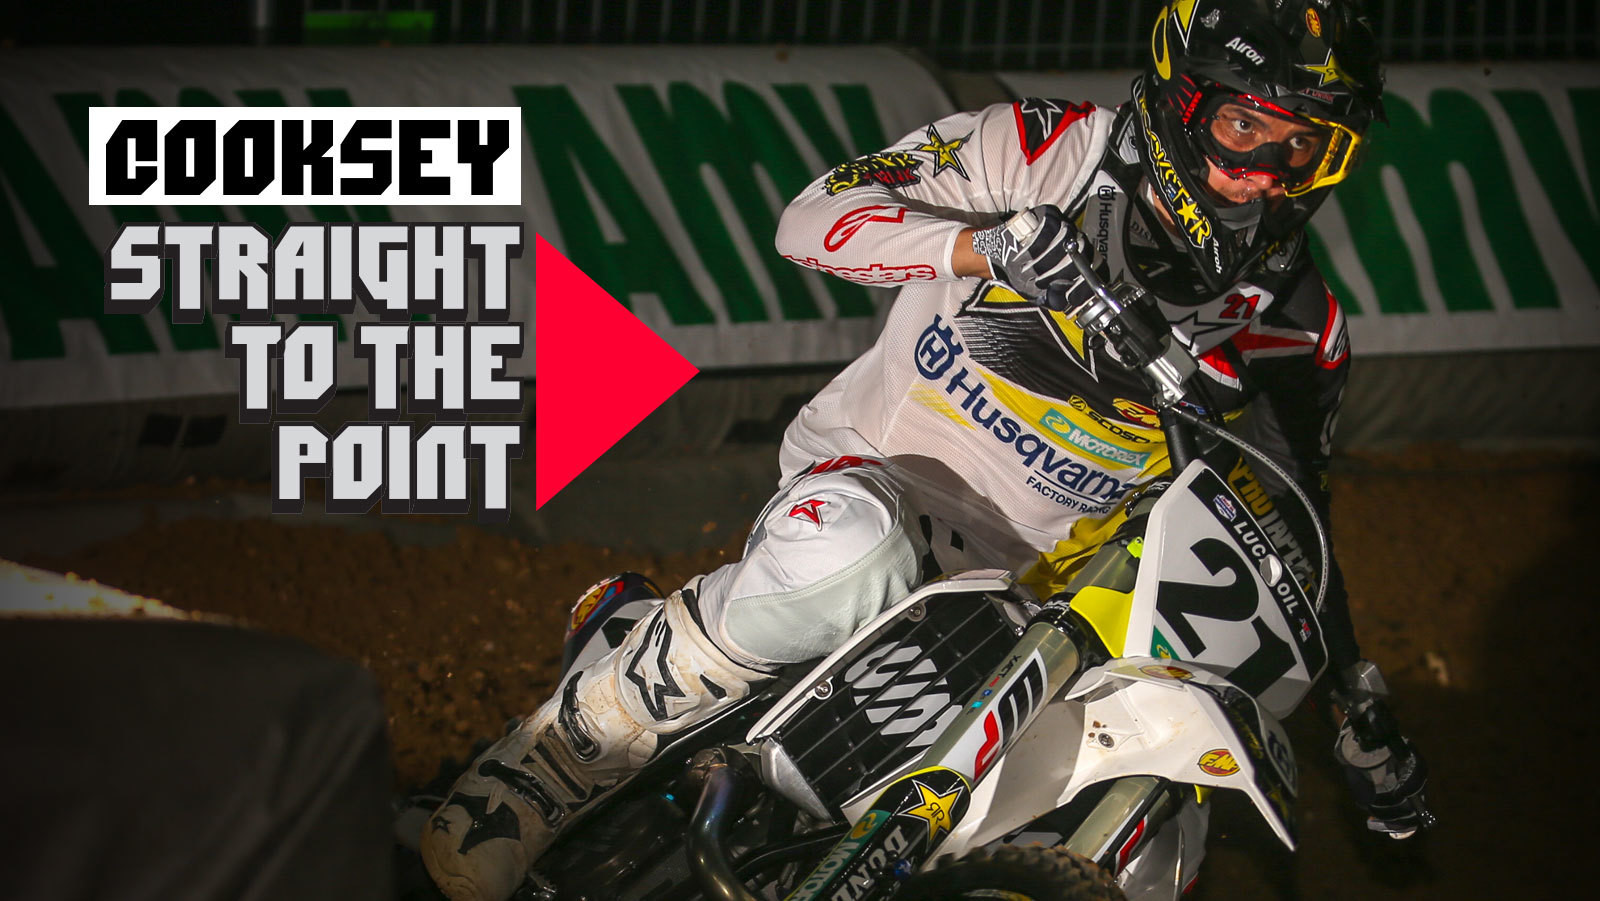 Cooksey, Straight To The Point: 450 SX Preview